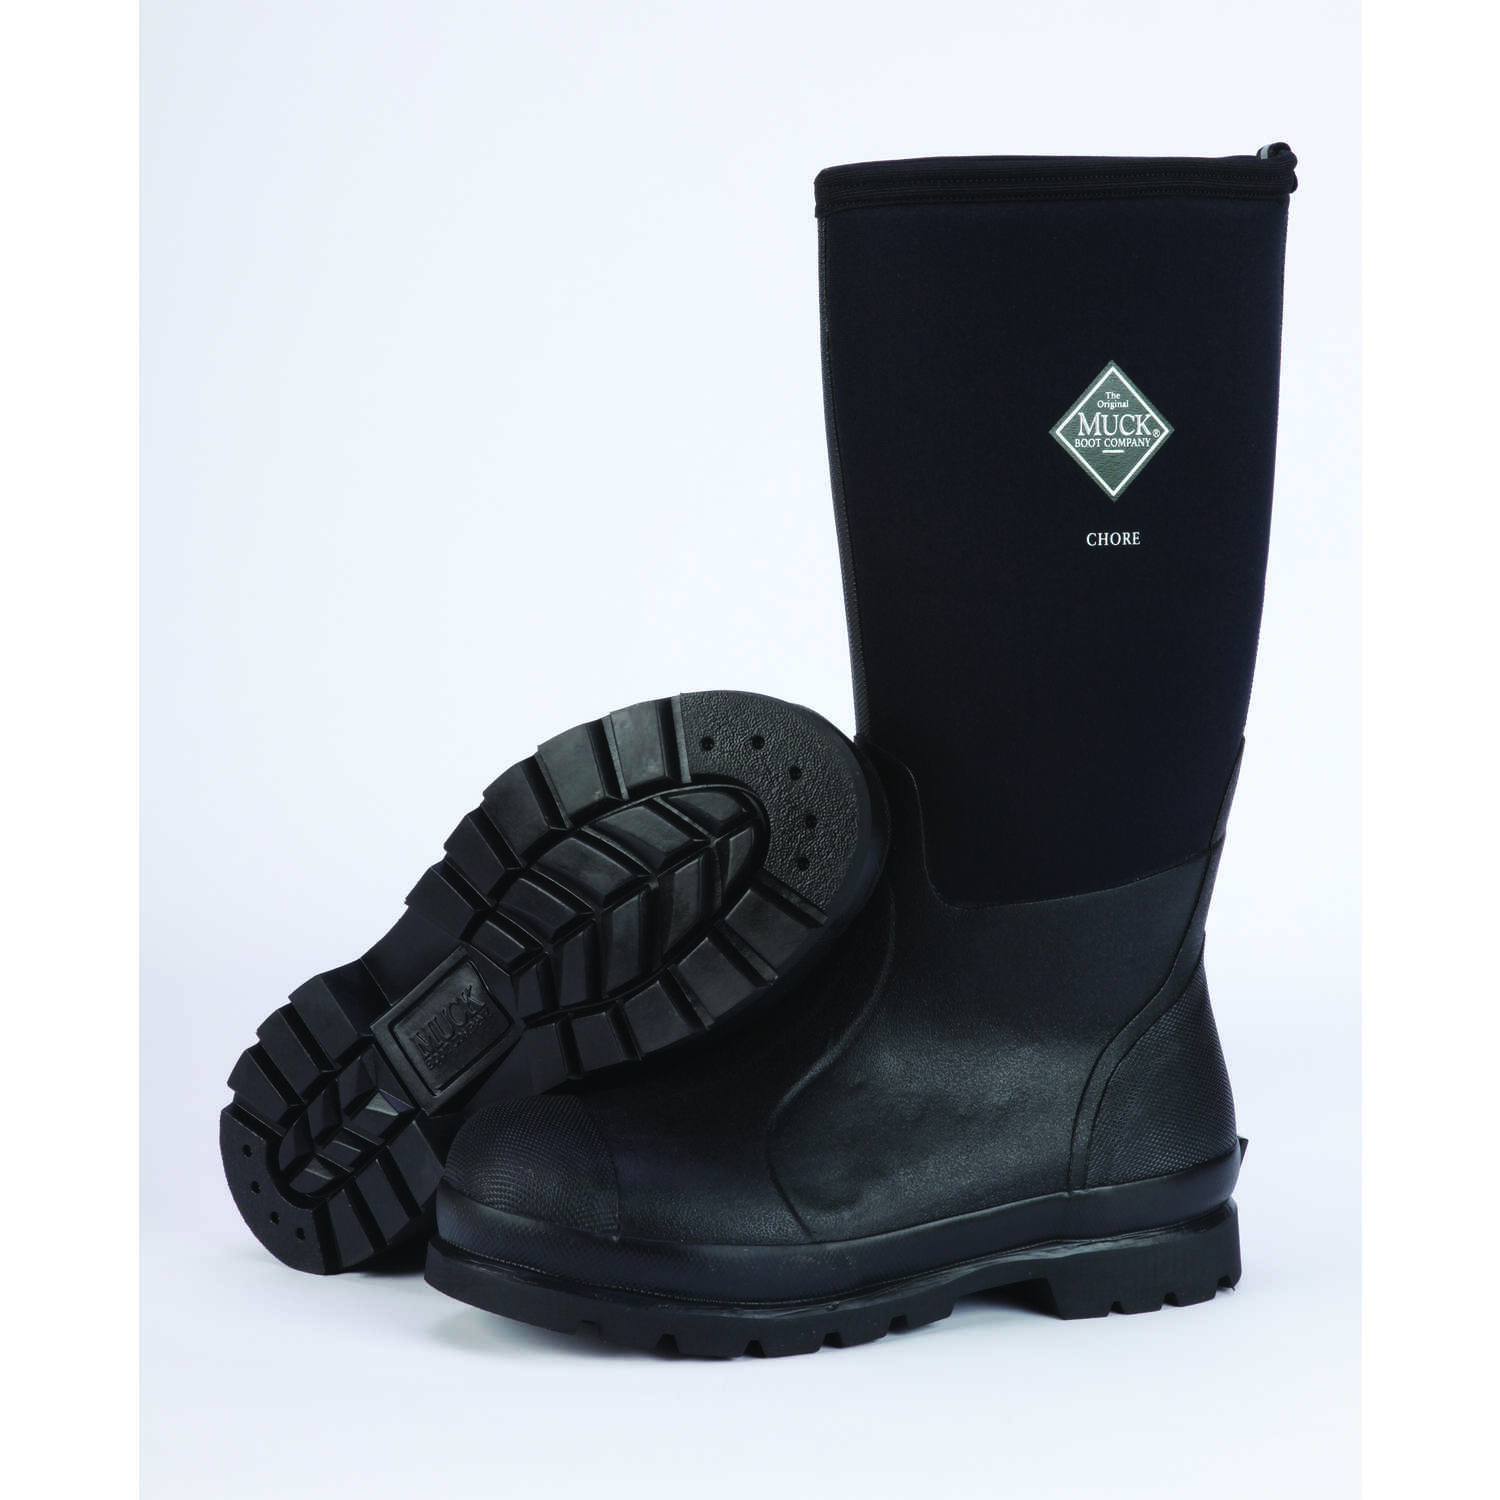 The Original Muck Boot Company  Chore Hi  Men's  Boots  12 US  Black